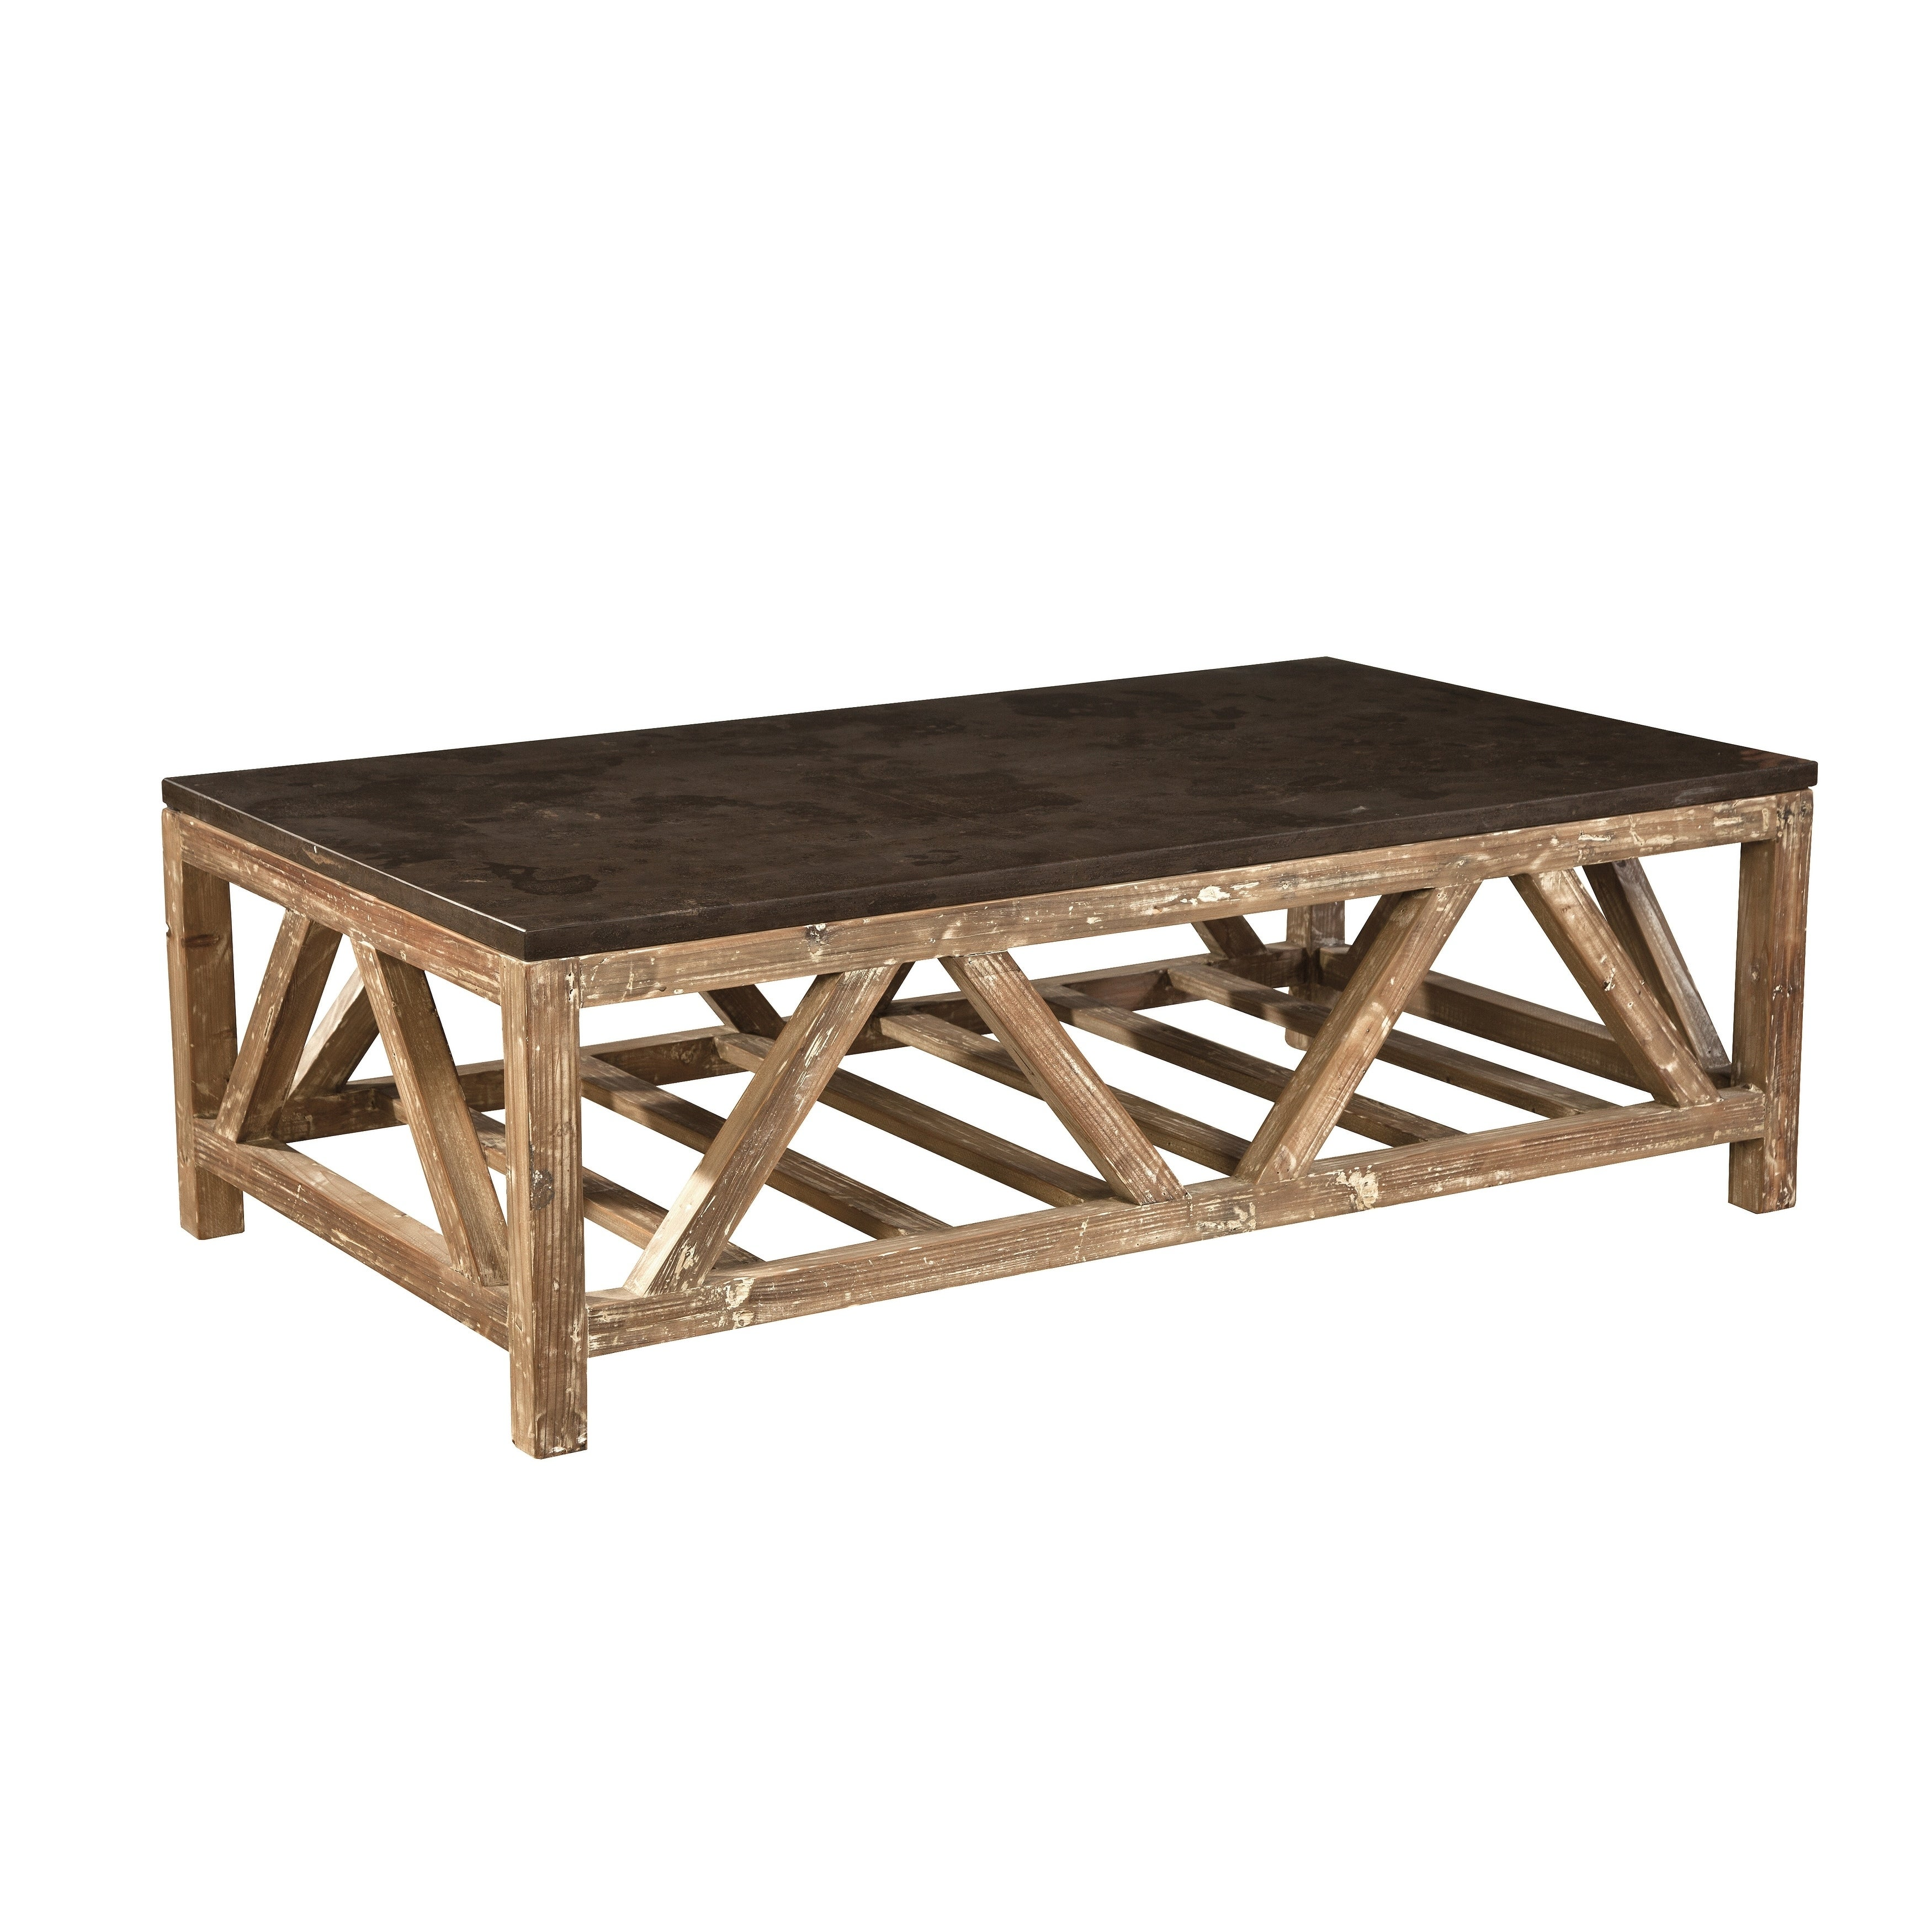 Shop cyprian reclaimed fir and bluestone coffee table free shipping today overstock com 17524208